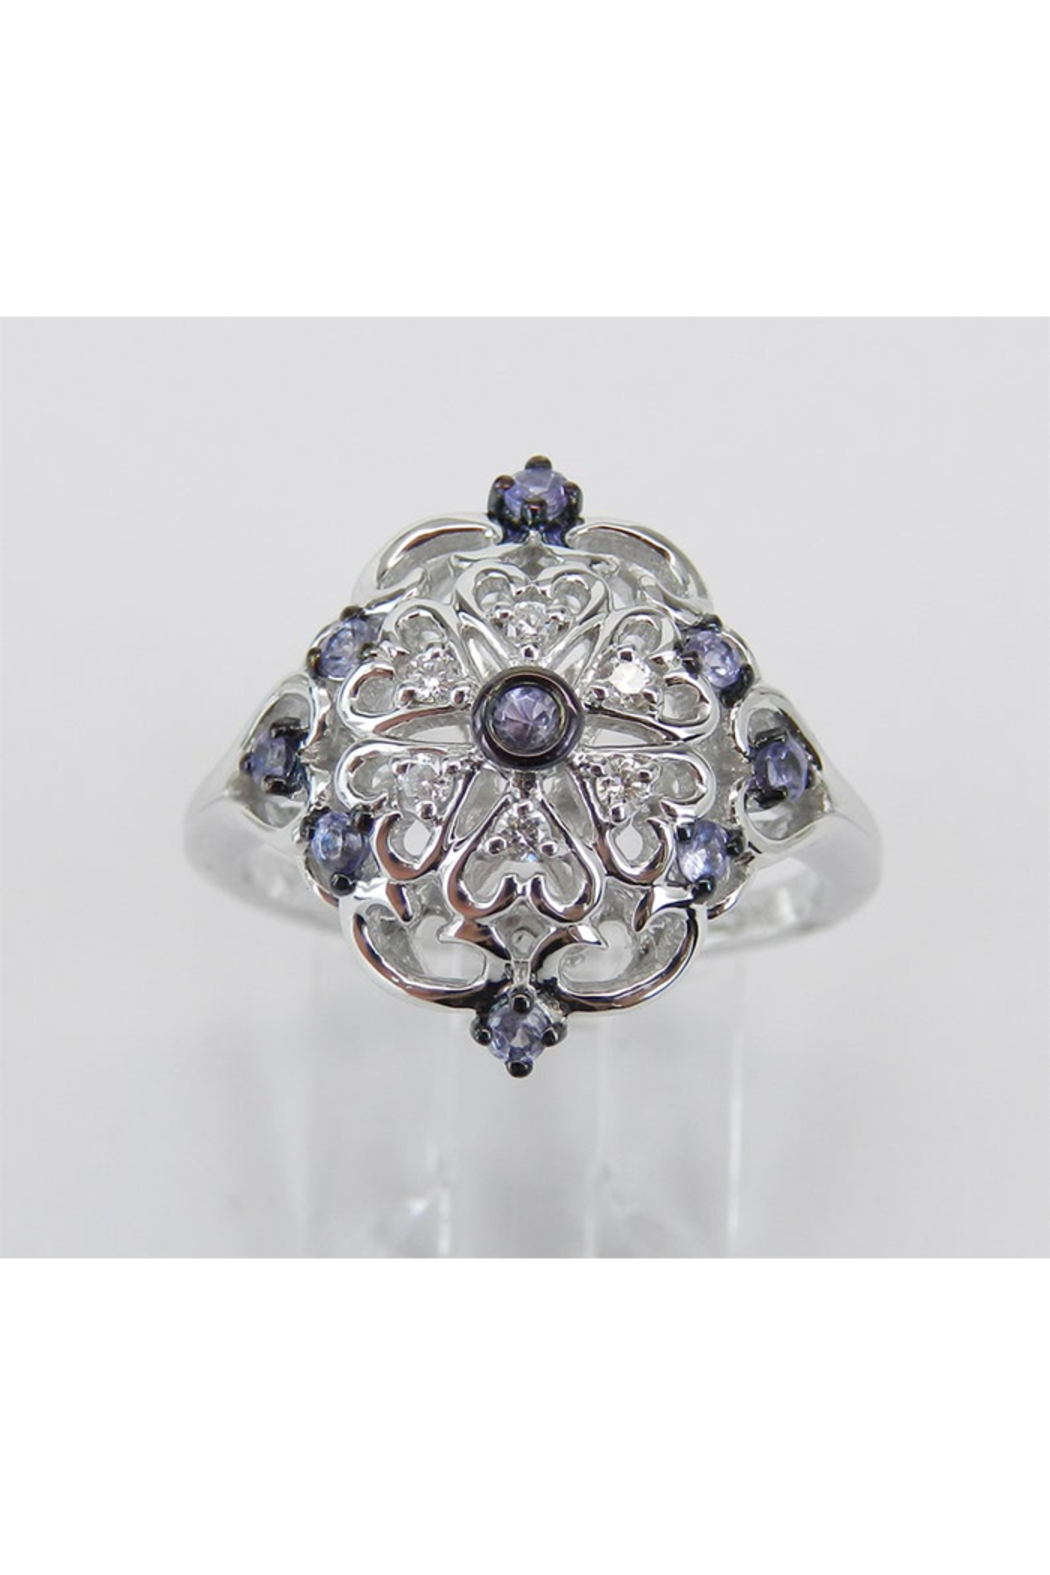 Margolin & Co Vintage Reproduction Style White Gold Diamond and Tanzanite Cocktail Cluster Ring Size 6.75 FREE Sizing - Main Image